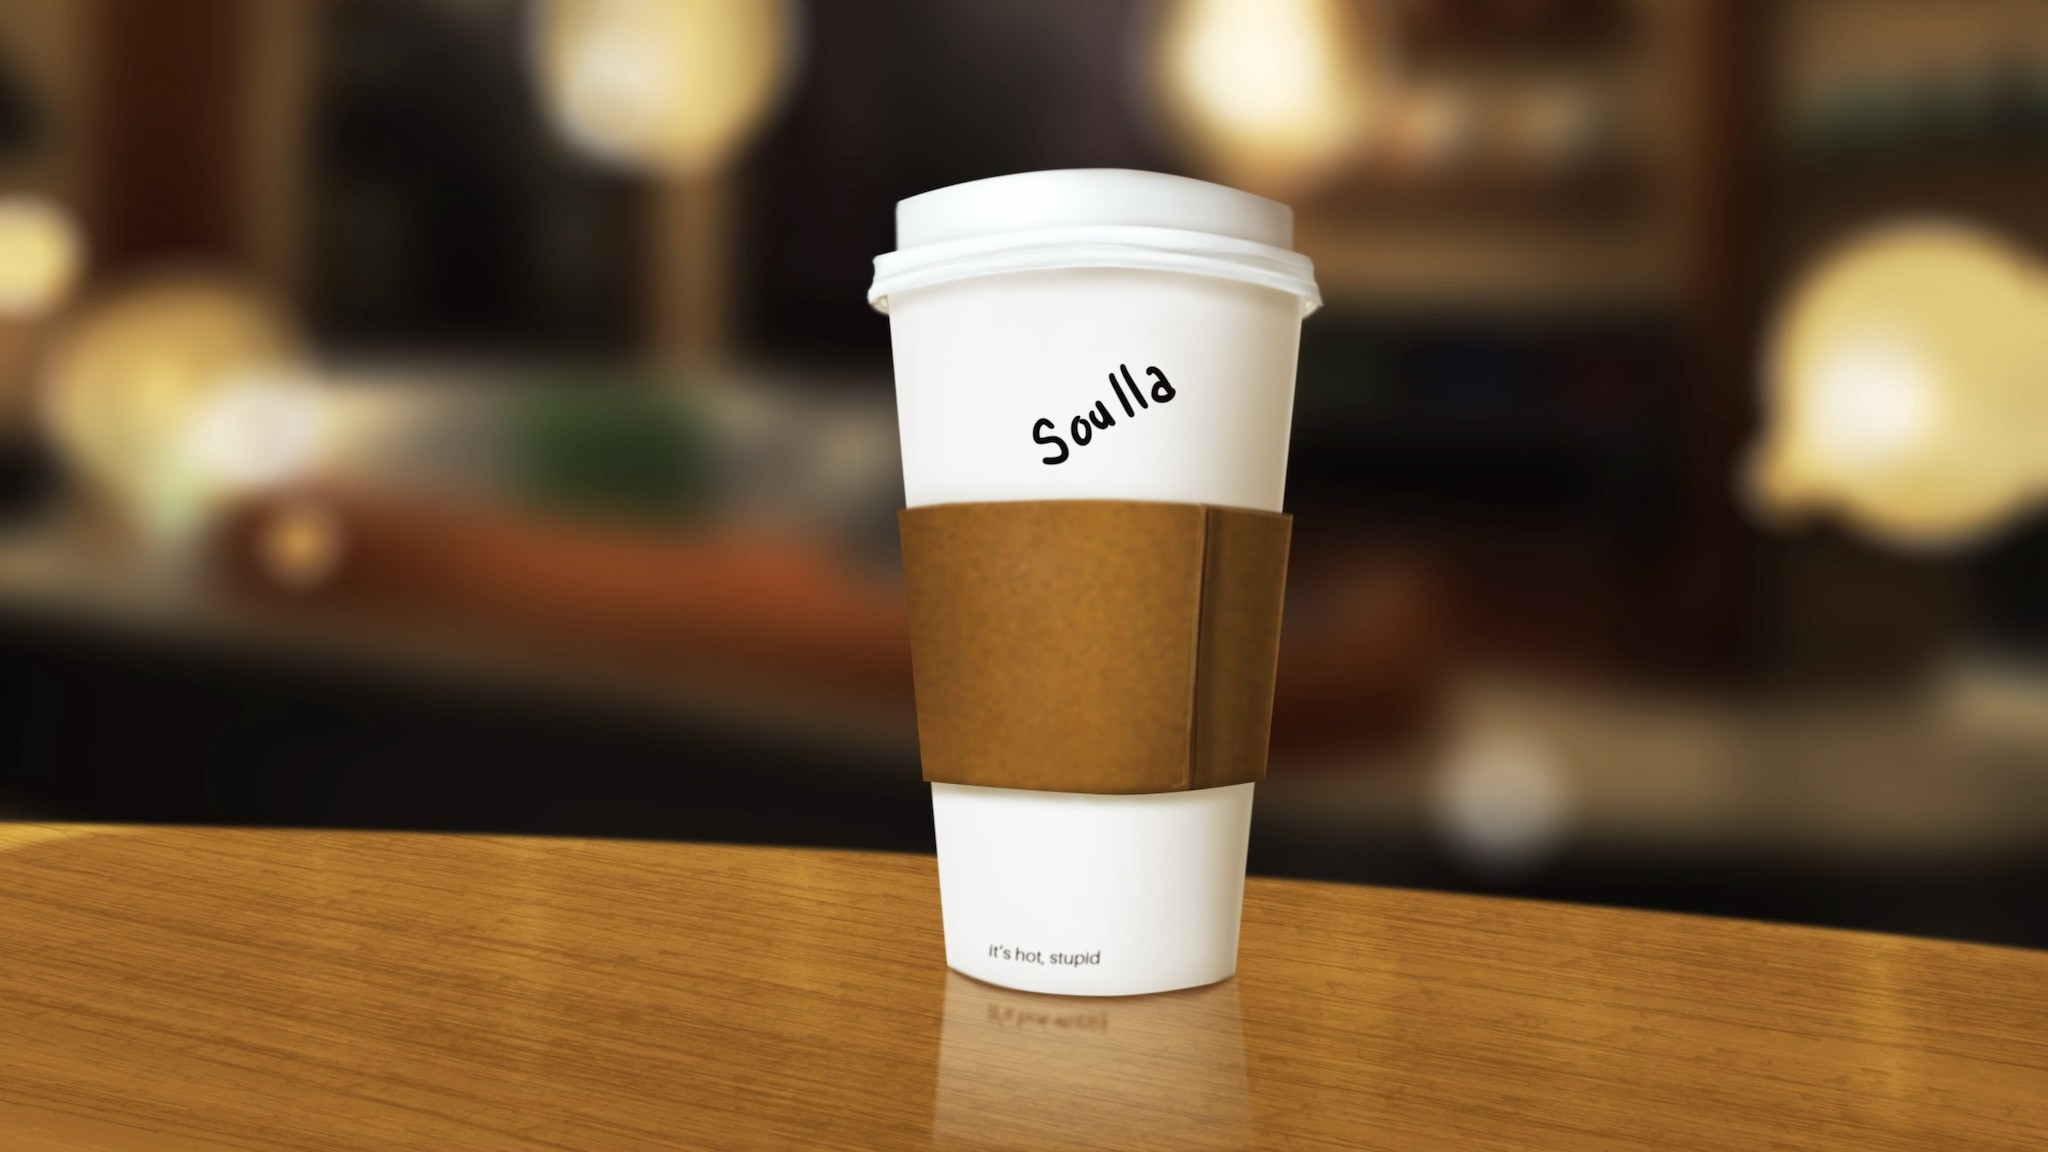 """A standard Starbucks-style coffee cup to-go with a thin, insufficient-seeming band of brown cardboard wrapped around the white cup to protect the buyer's hands. On the cup itself, someone wrote with black sharpie """"Soulla"""". Near the very bottom of the cup are some printed letters: """"it's hot, stupid""""; truly groanworthy."""